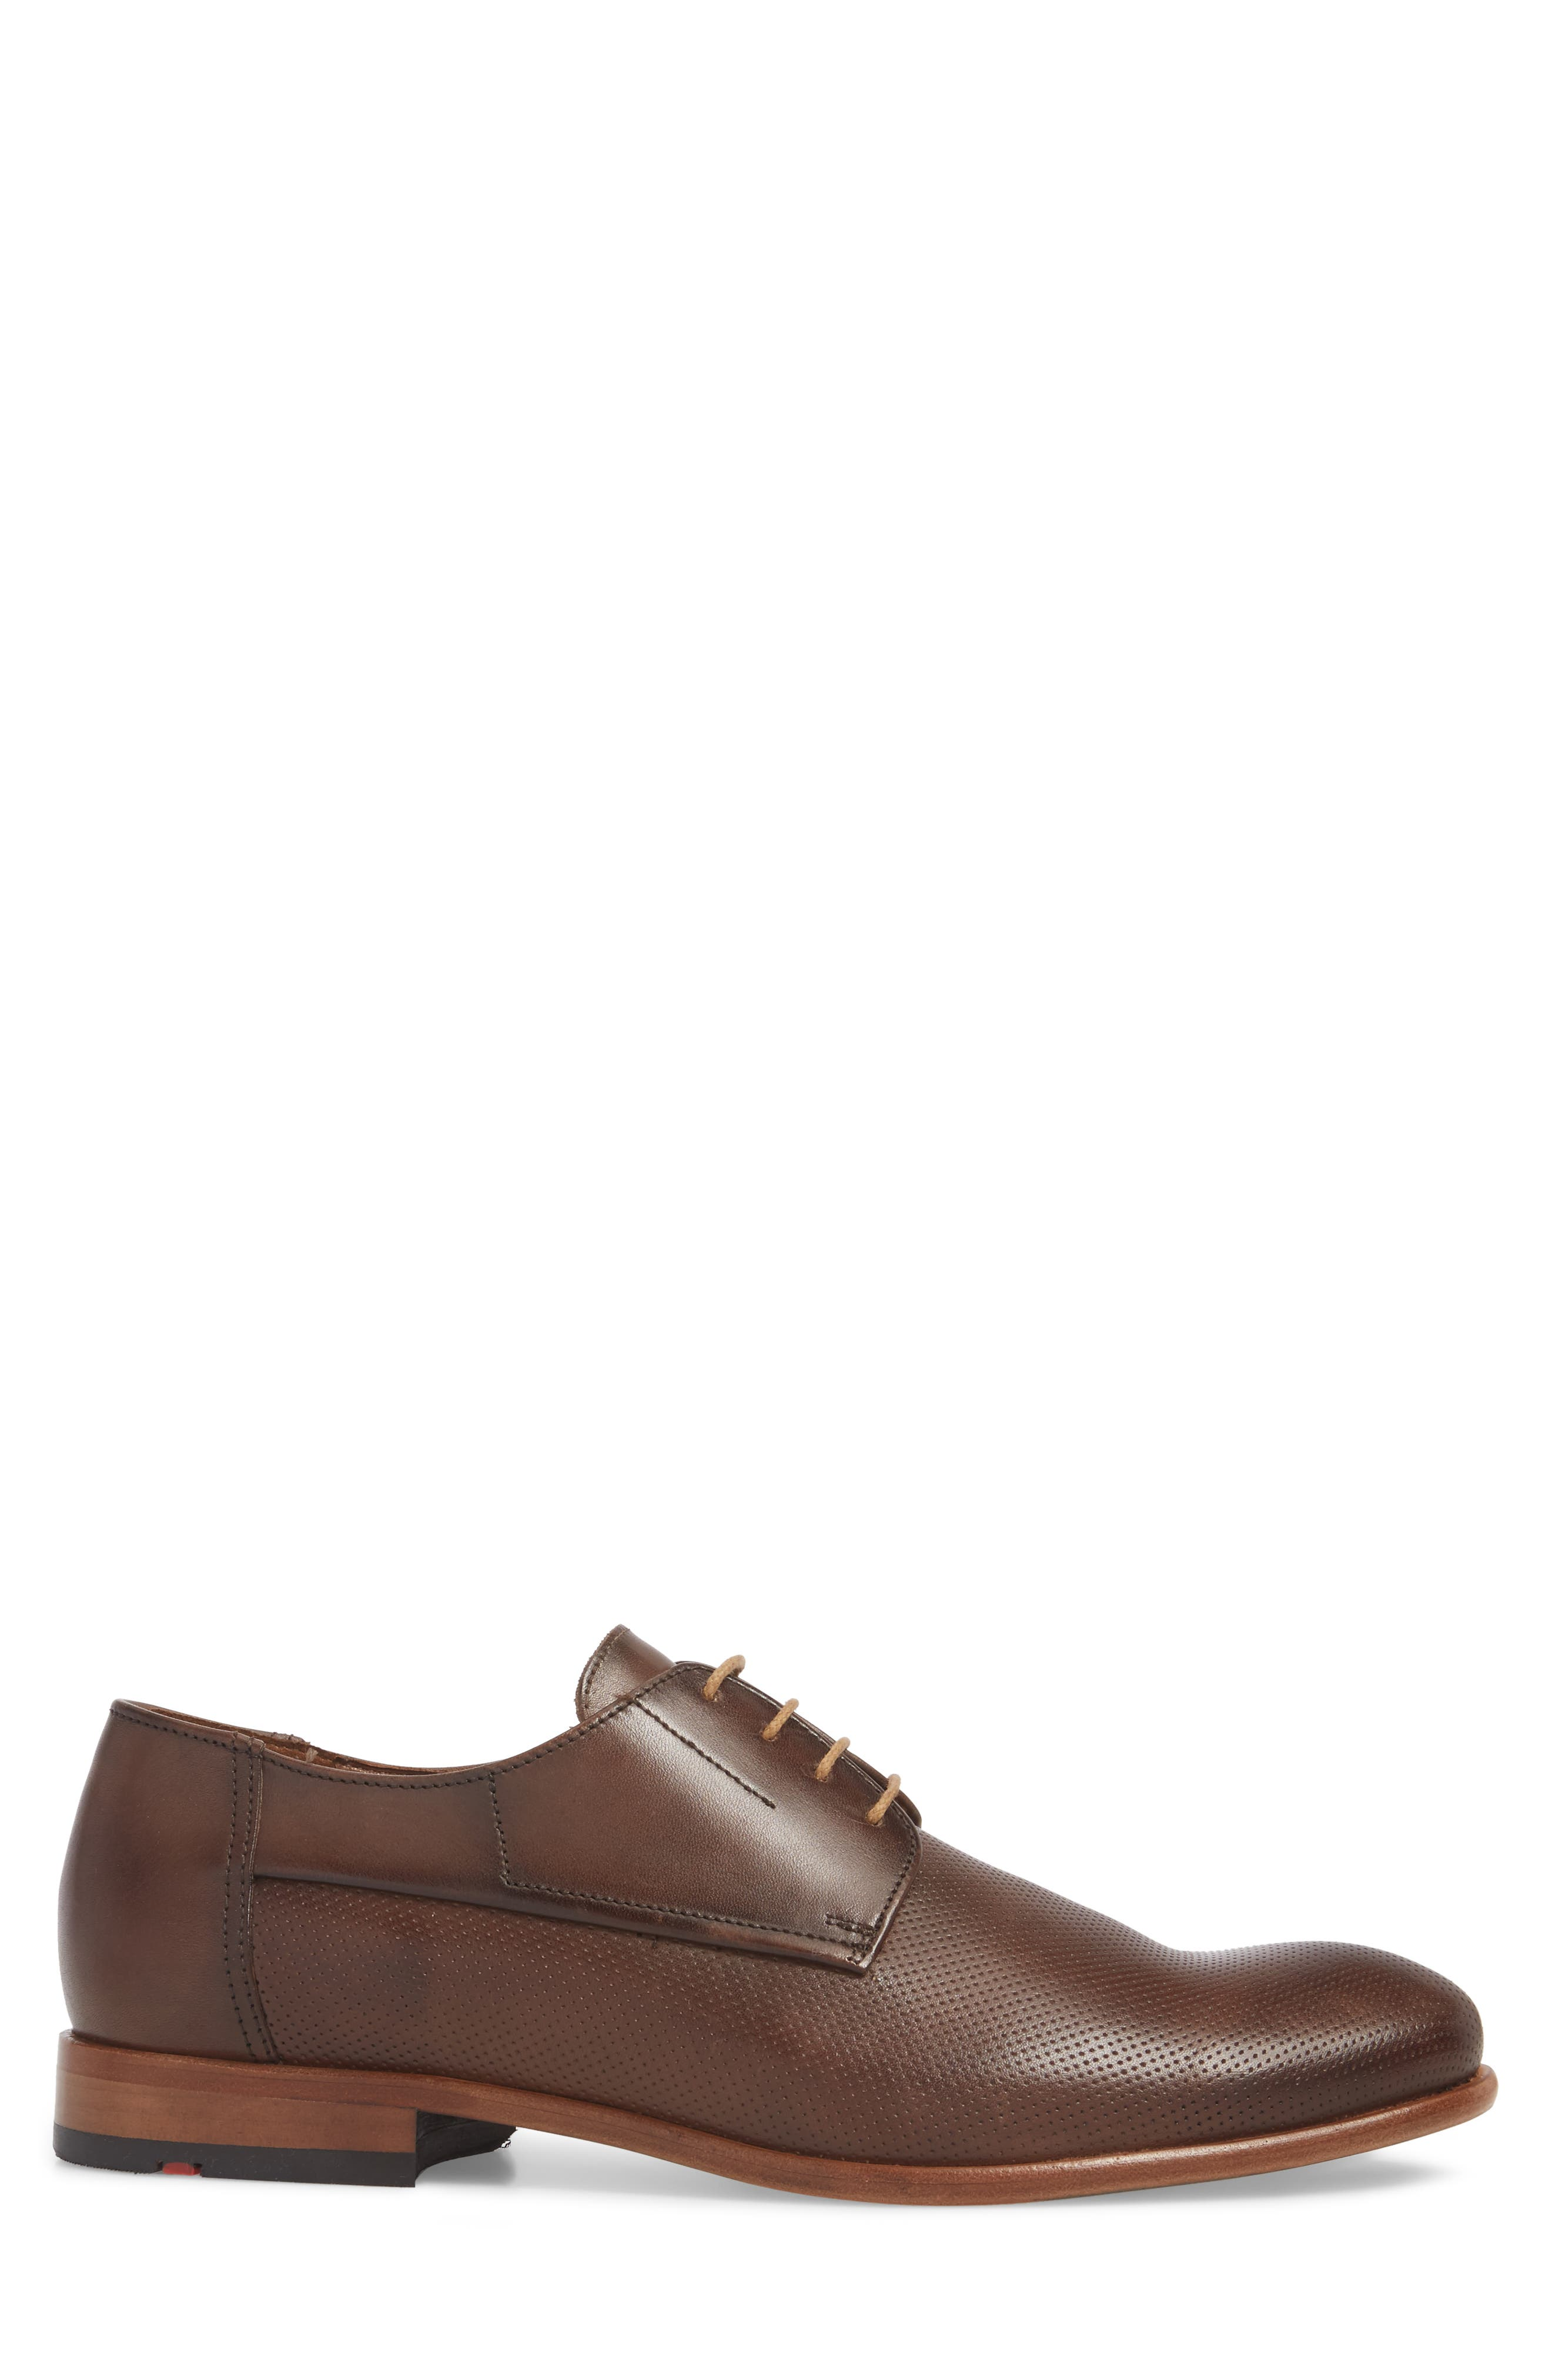 Napir Embossed Plain Toe Derby,                             Alternate thumbnail 3, color,                             CIGAR LEATHER